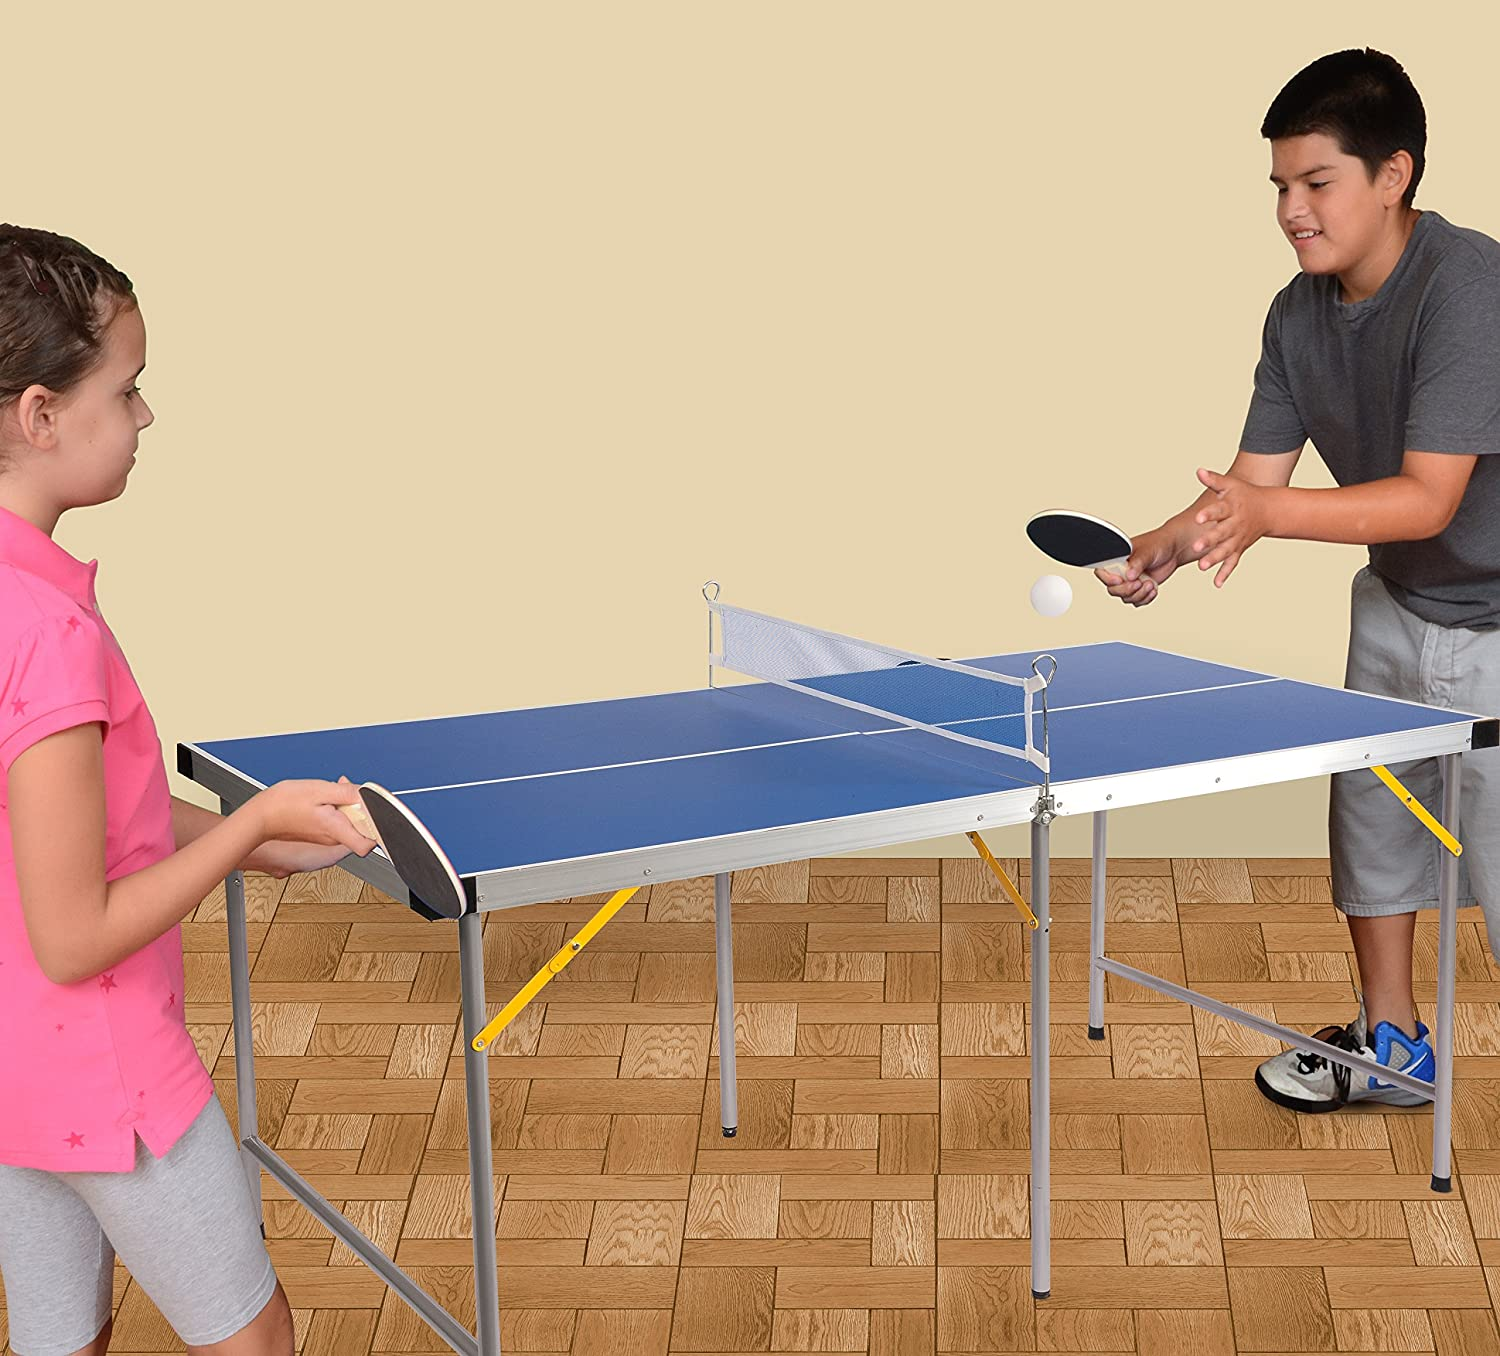 Amazon.com : Lion Sports Folding Portable Table Tennis Ping Pong Table, 5u0027  : Sports U0026 Outdoors